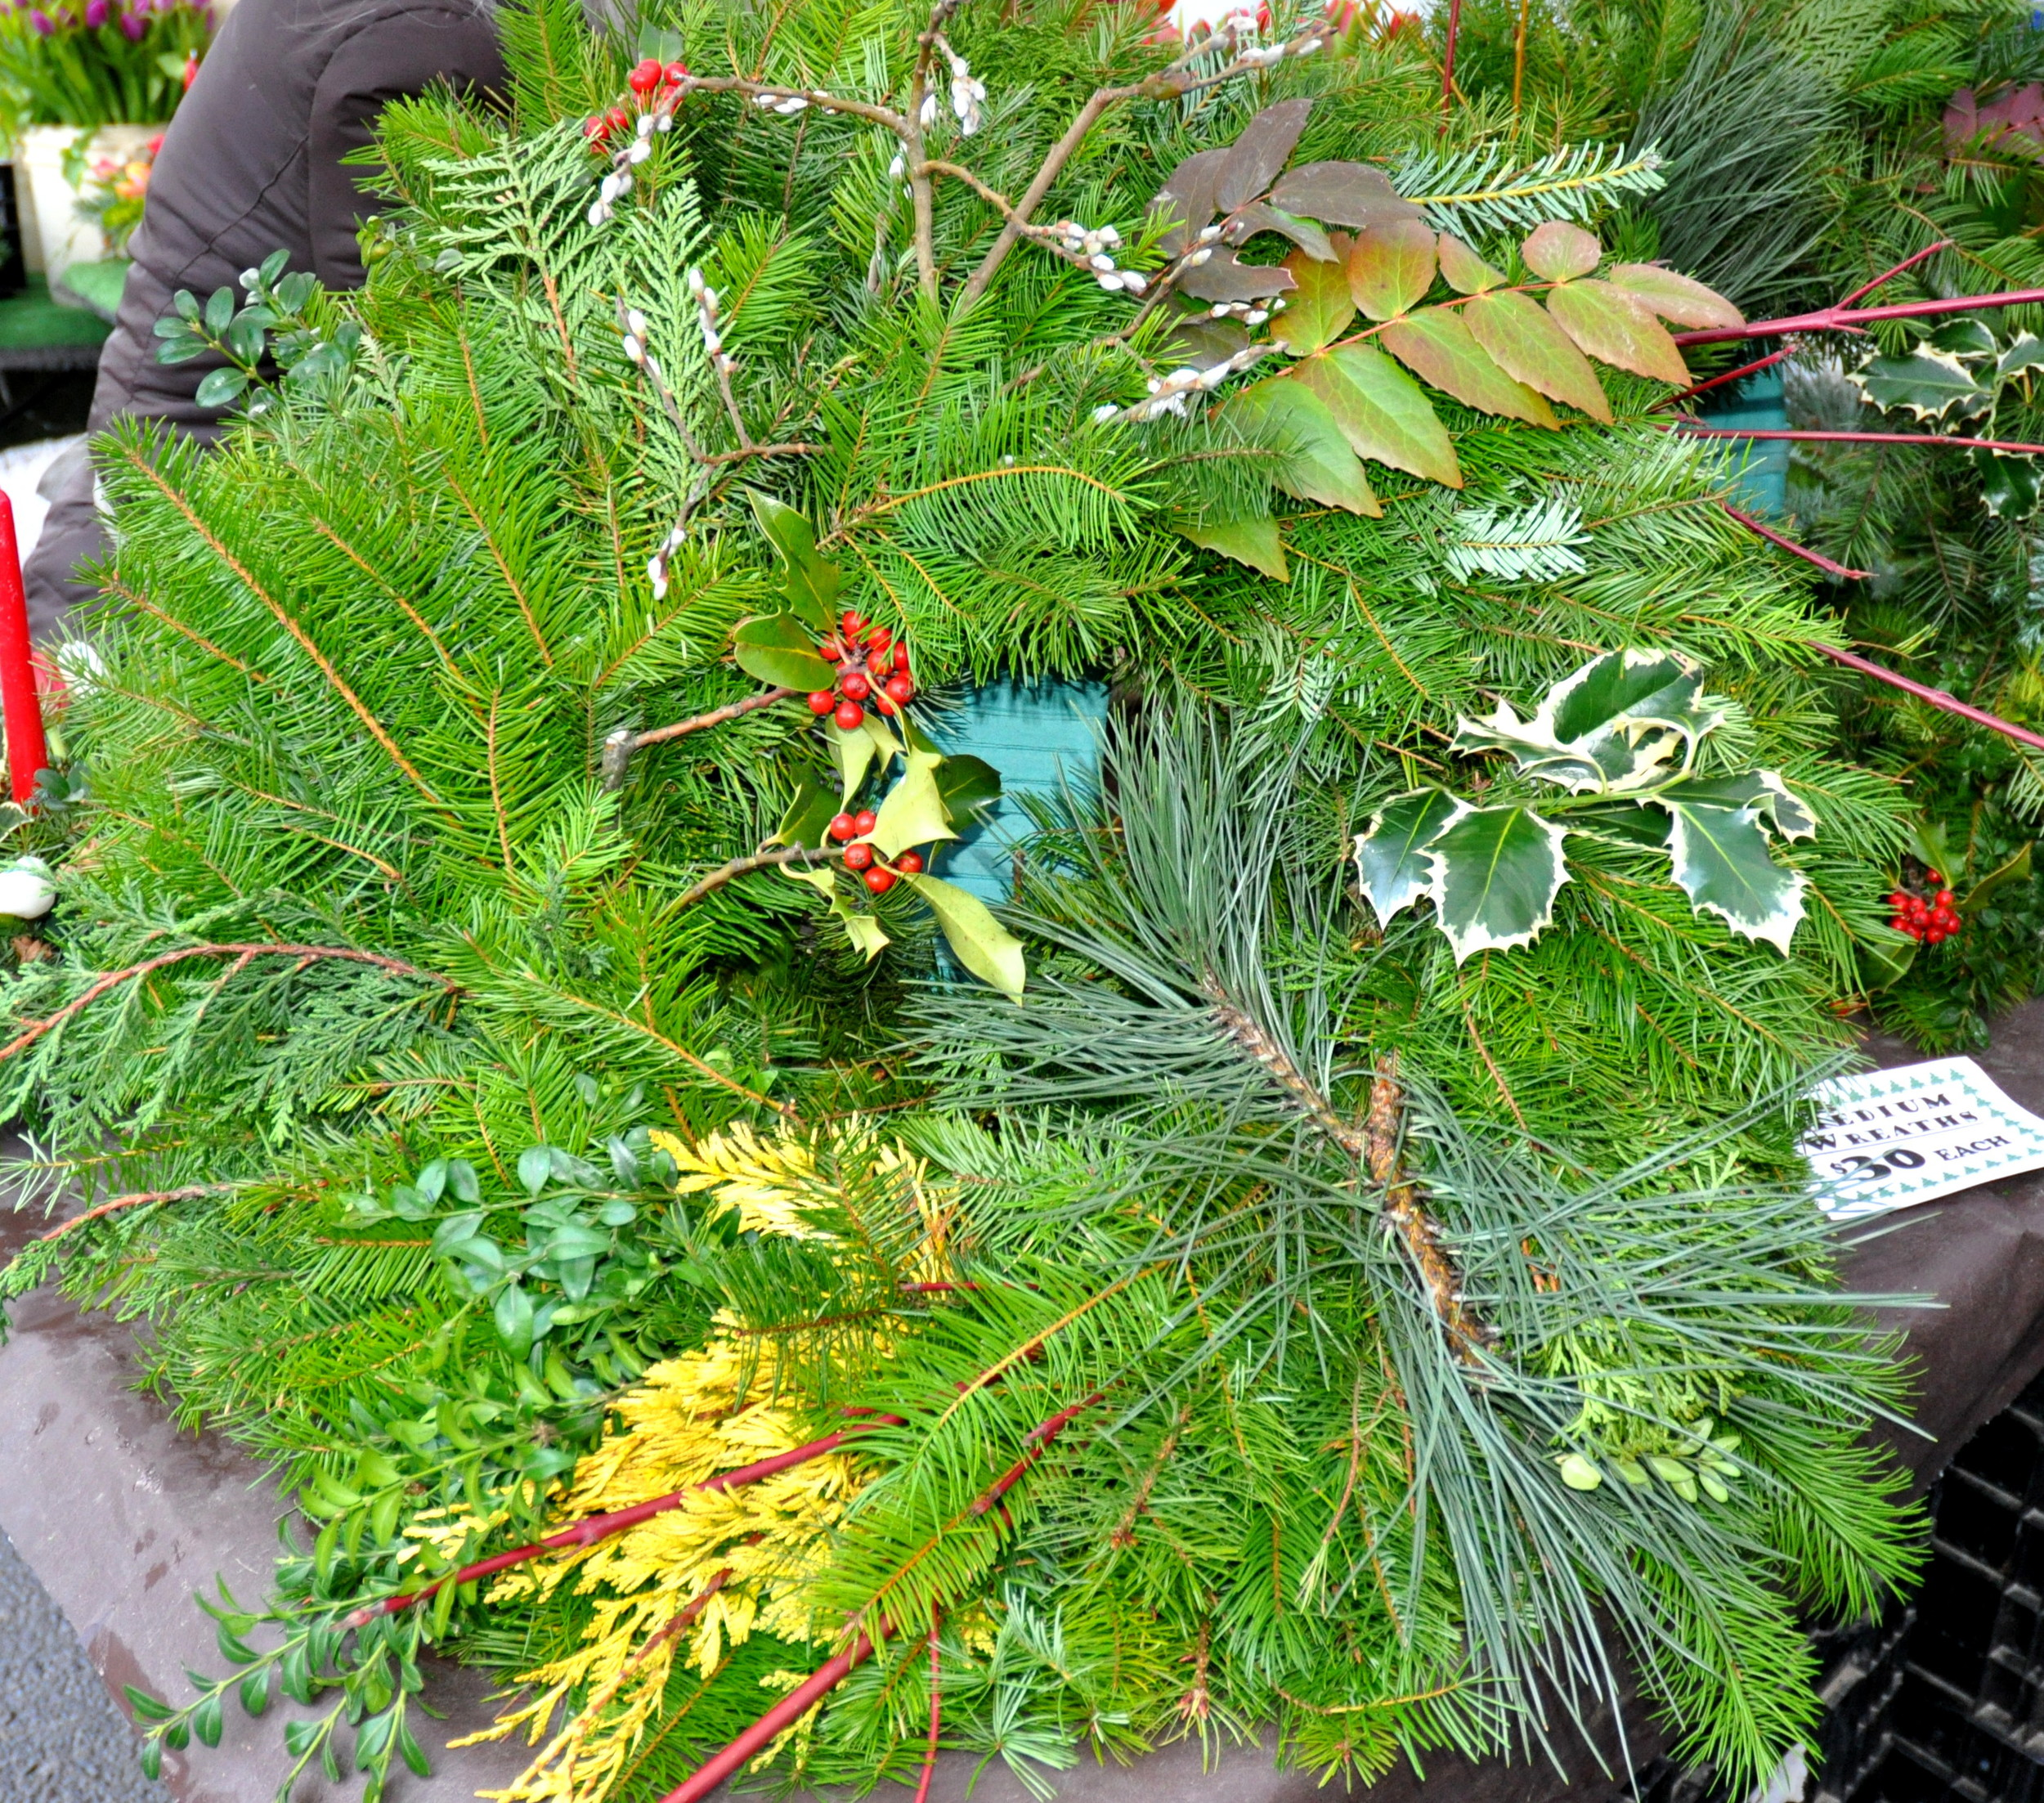 Fresh holiday wreathes from Alm Hill Gardens. Photo copyright 2011 by Zachary D. Lyons.